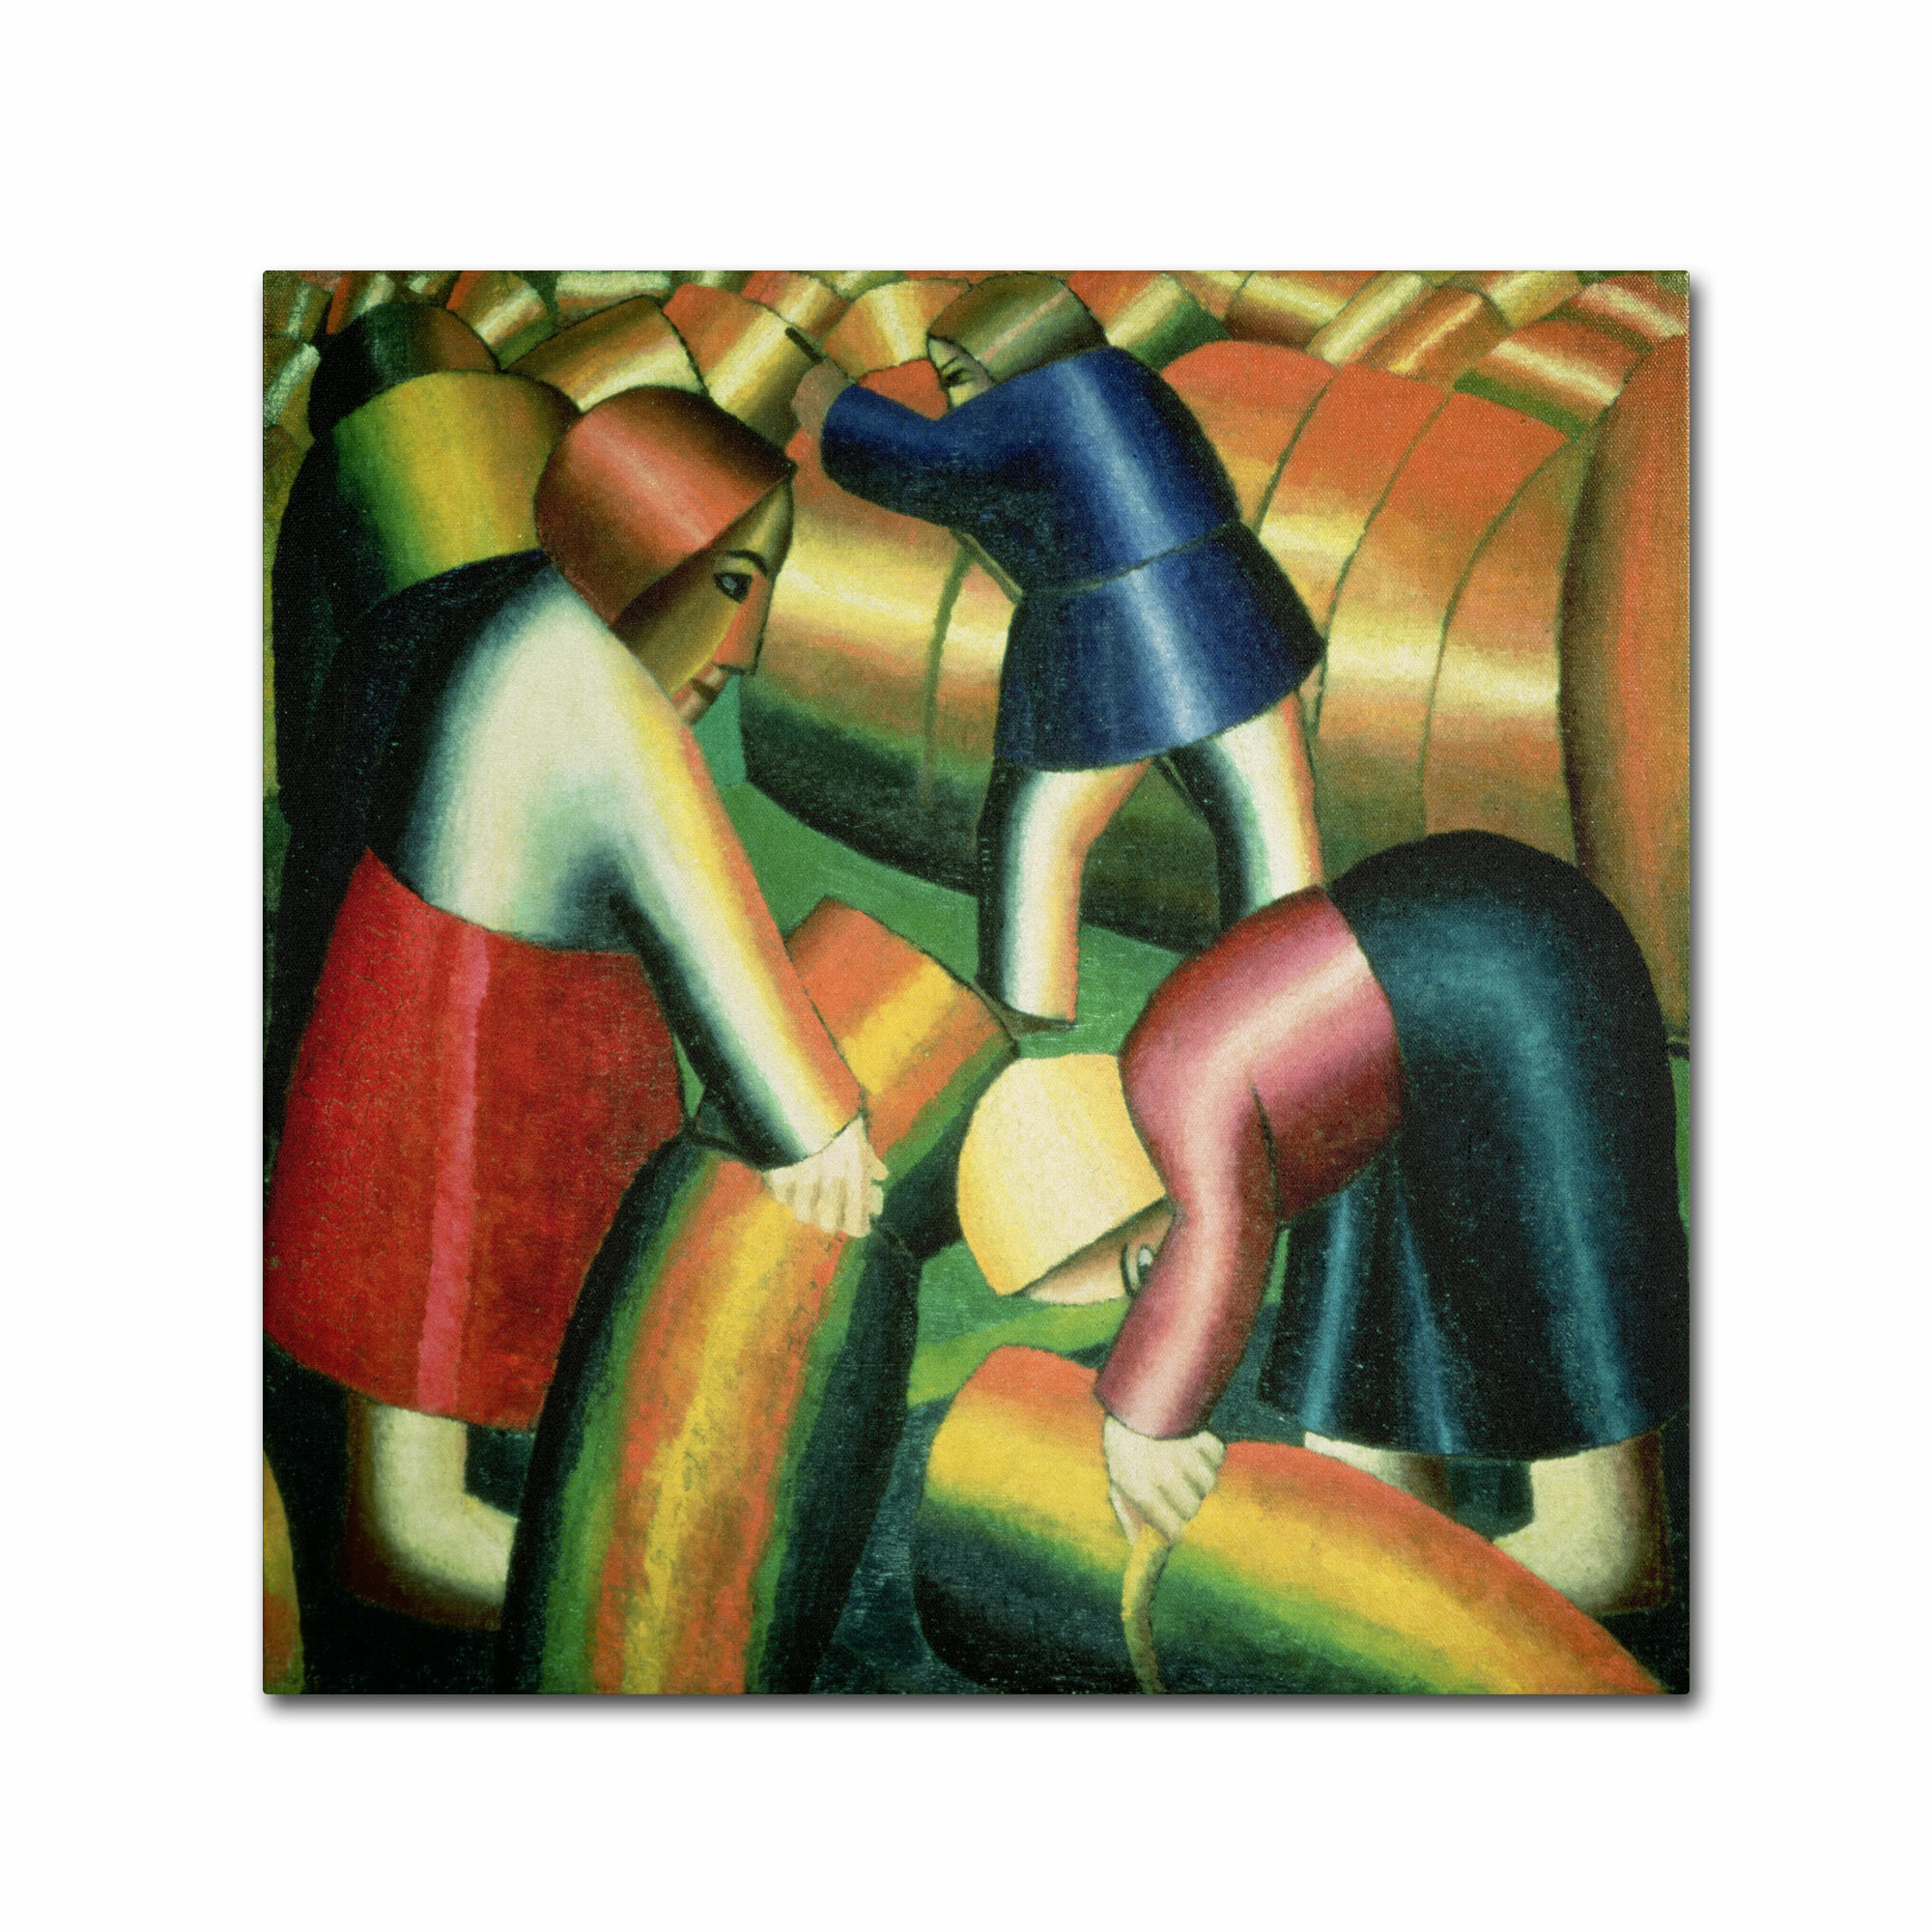 Trademark Art Taking In The Rye 1912 By Kazimir Malevich Painting Print On Wrapped Canvas Wayfair